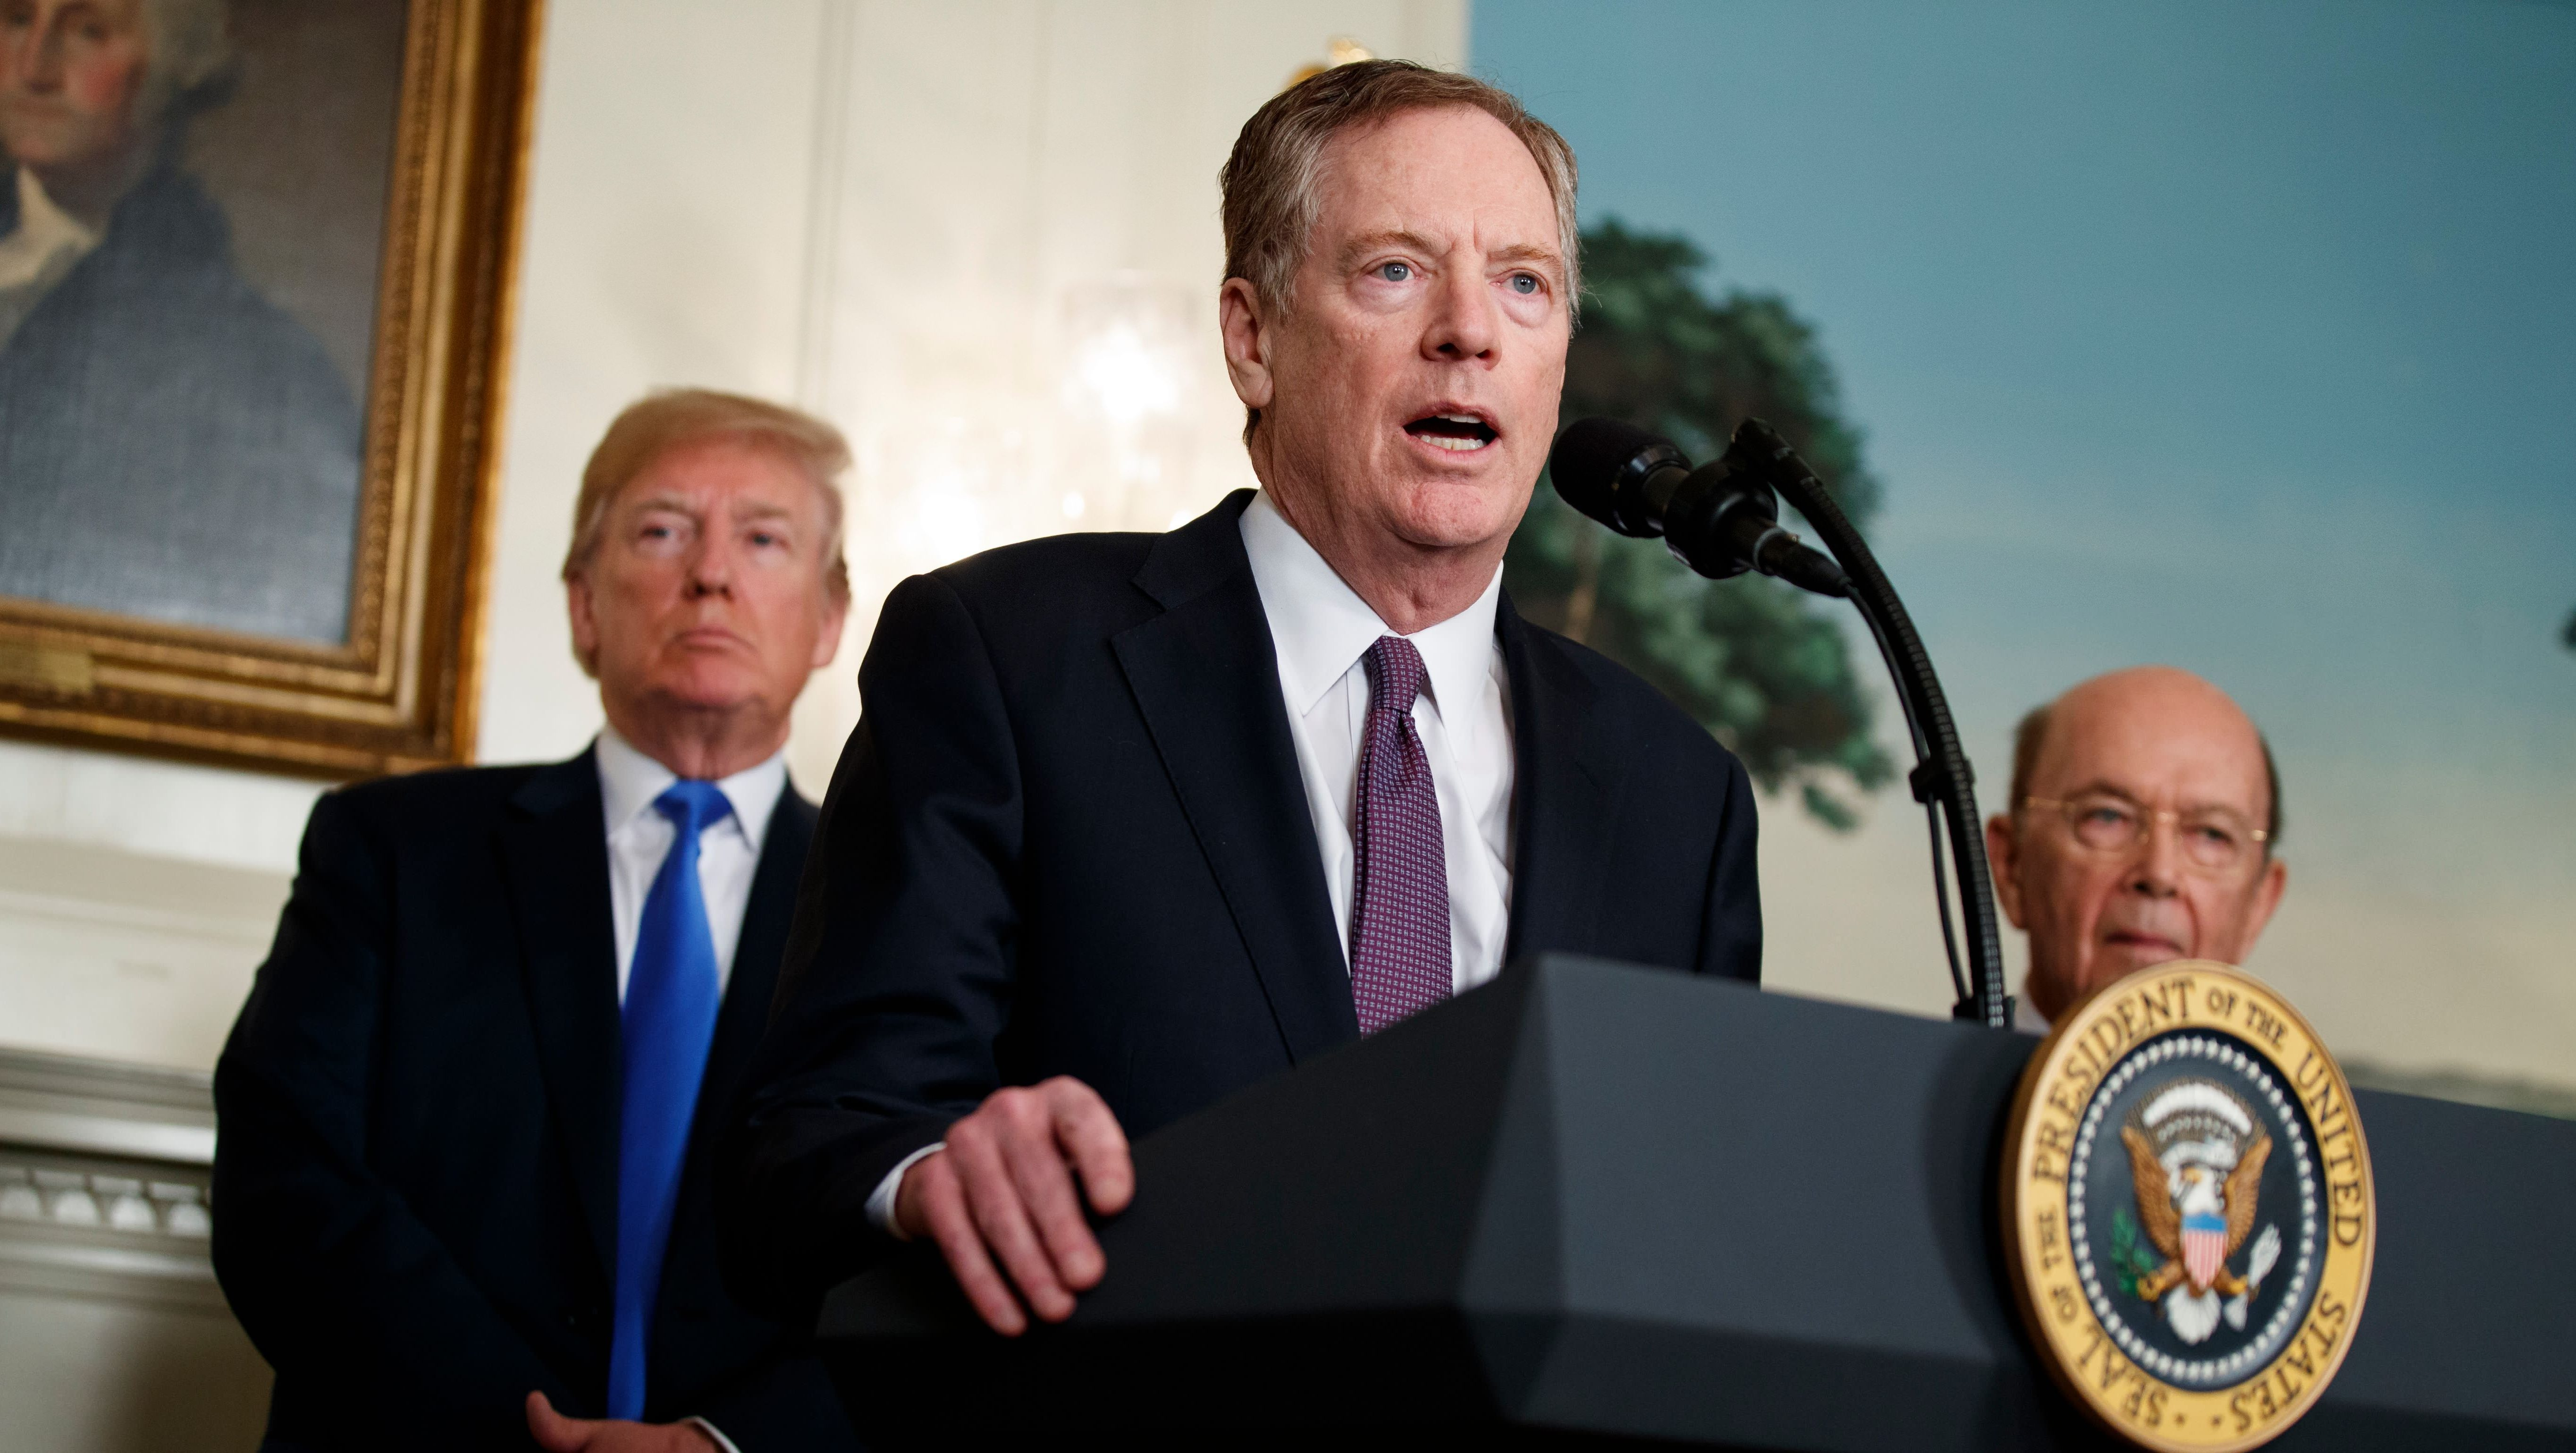 President Donald Trump, left, and Secretary of Commerce Wilbur Ross, right, listen to United States Trade Representative Robert Lighthizer speak during an event to announce tariffs and investment restrictions on China, in the Diplomatic Reception Room of the White House, Thursday, March 22, 2018, in Washington. (AP Photo/Evan Vucci)